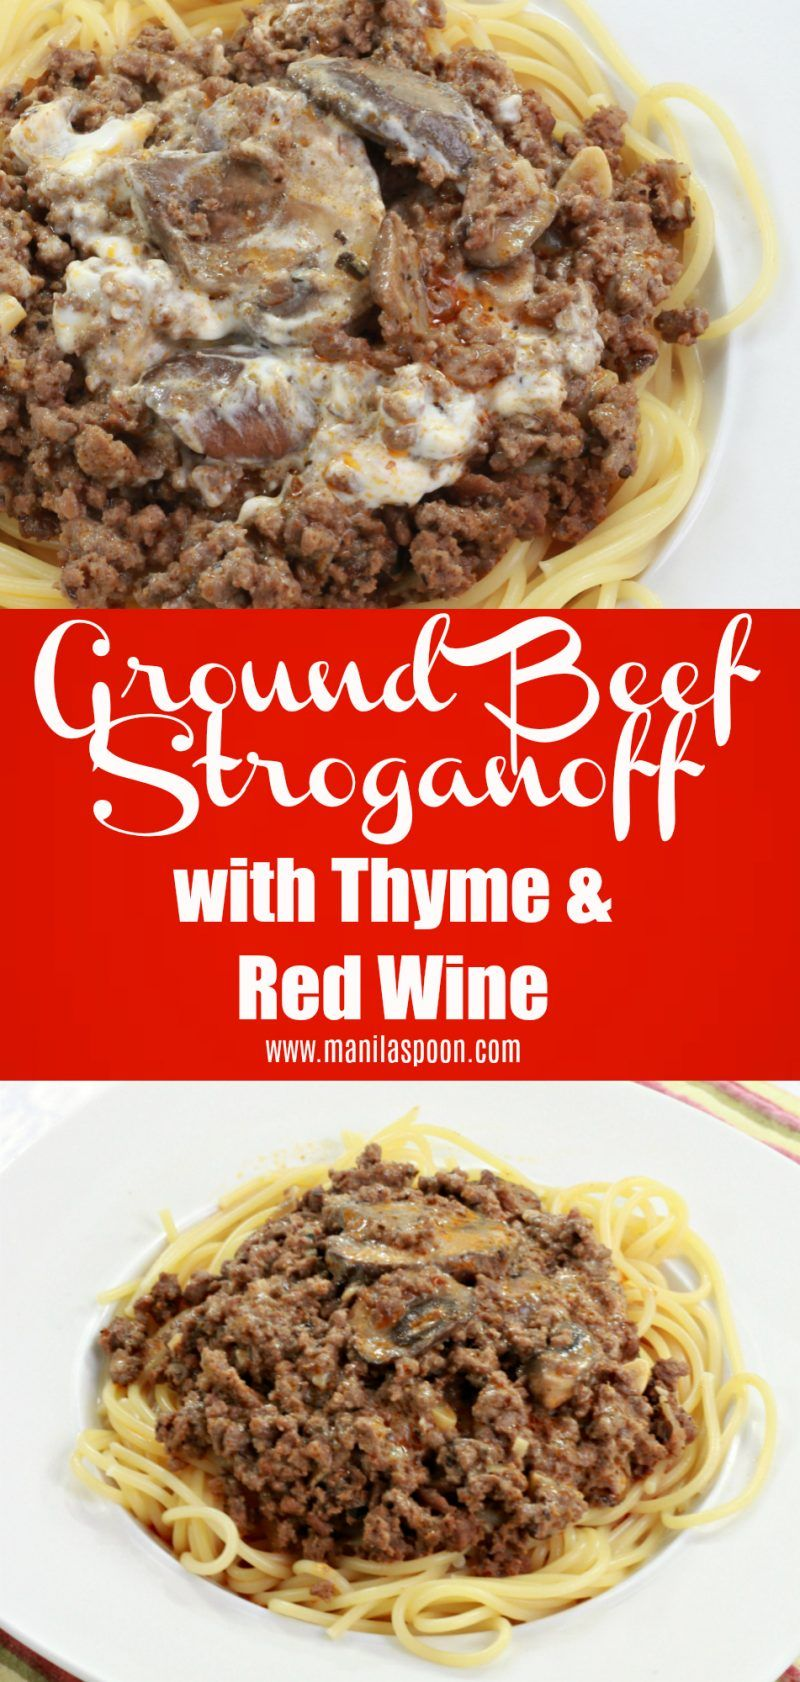 Slowly Simmered In Red Wine This Ground Beef Stroganoff Is Over The Top Yummy A Huge Family Favorite Ground Beef Stroganoff Beef Stroganoff Stroganoff